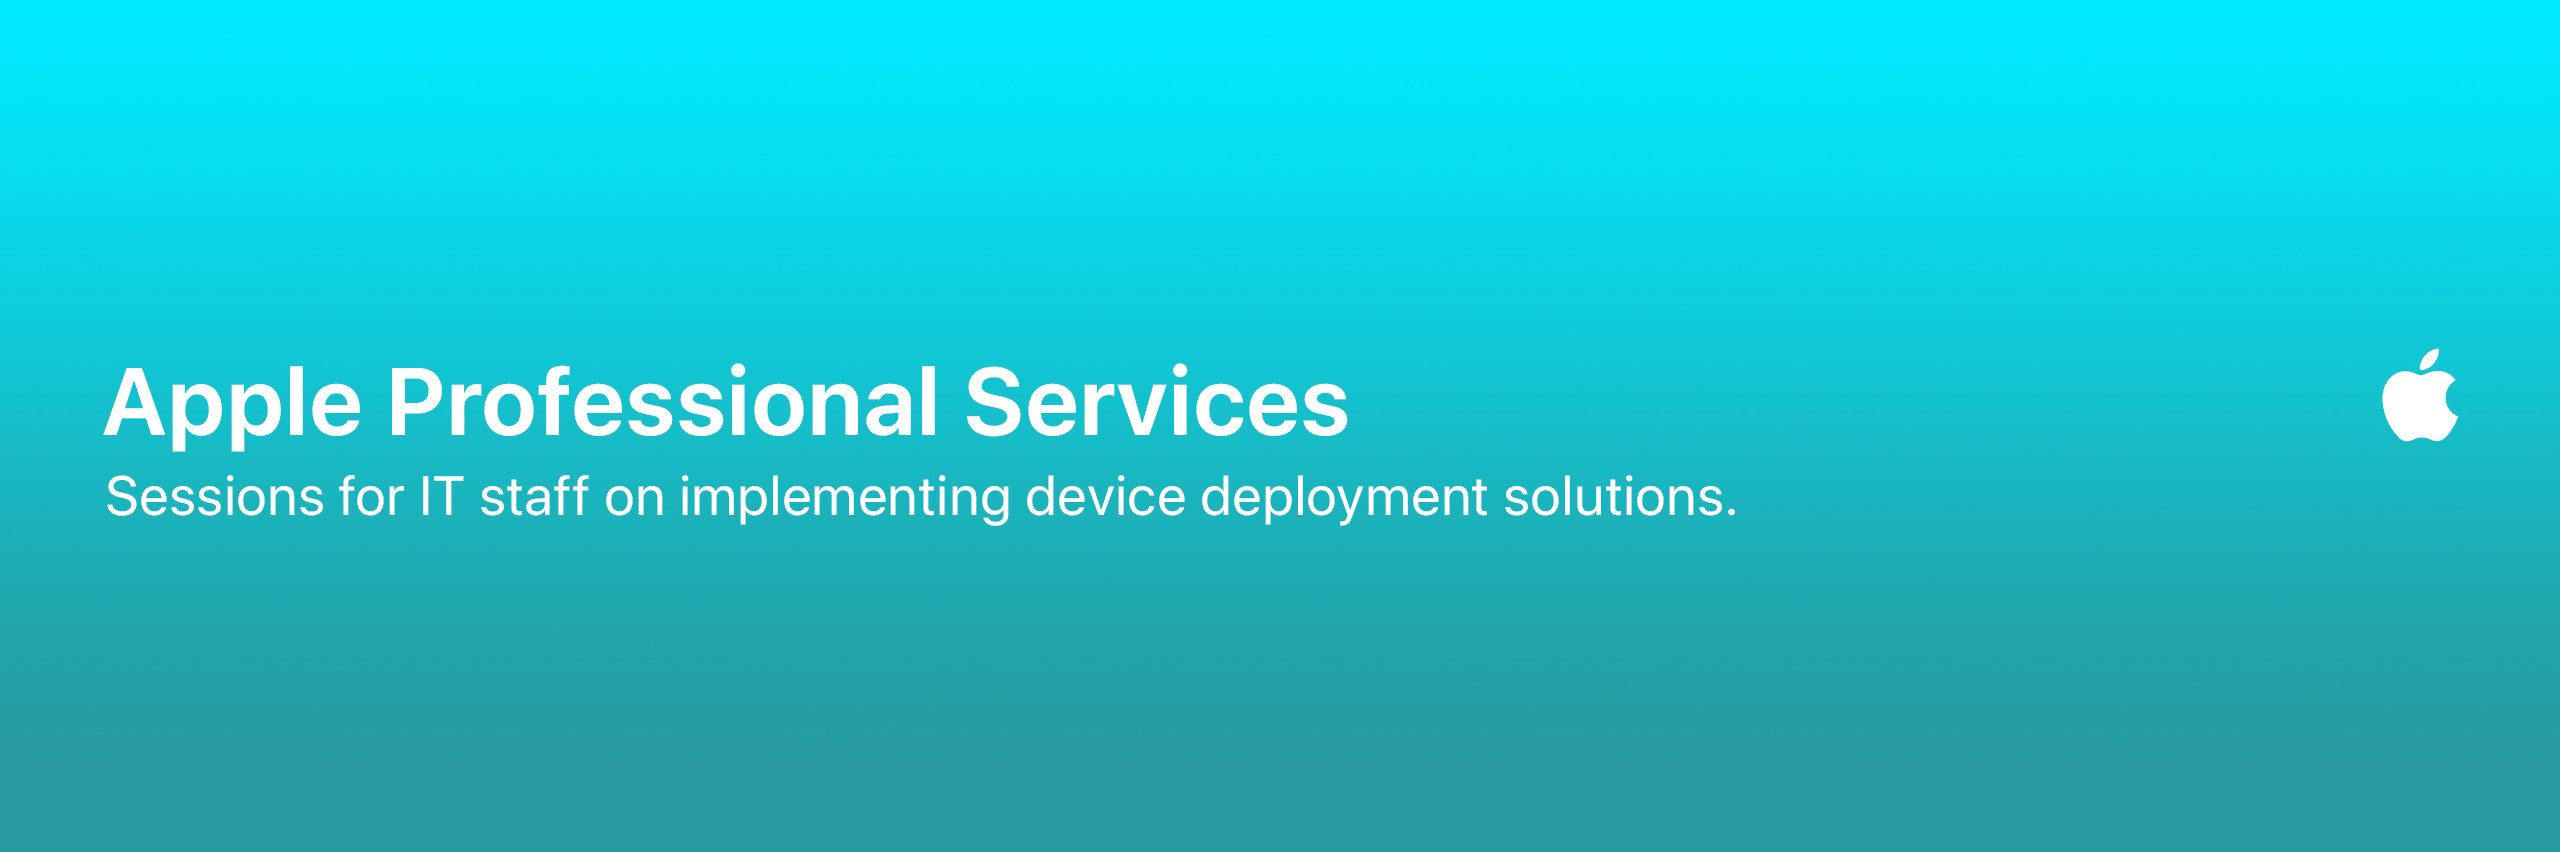 Apple Professional Services